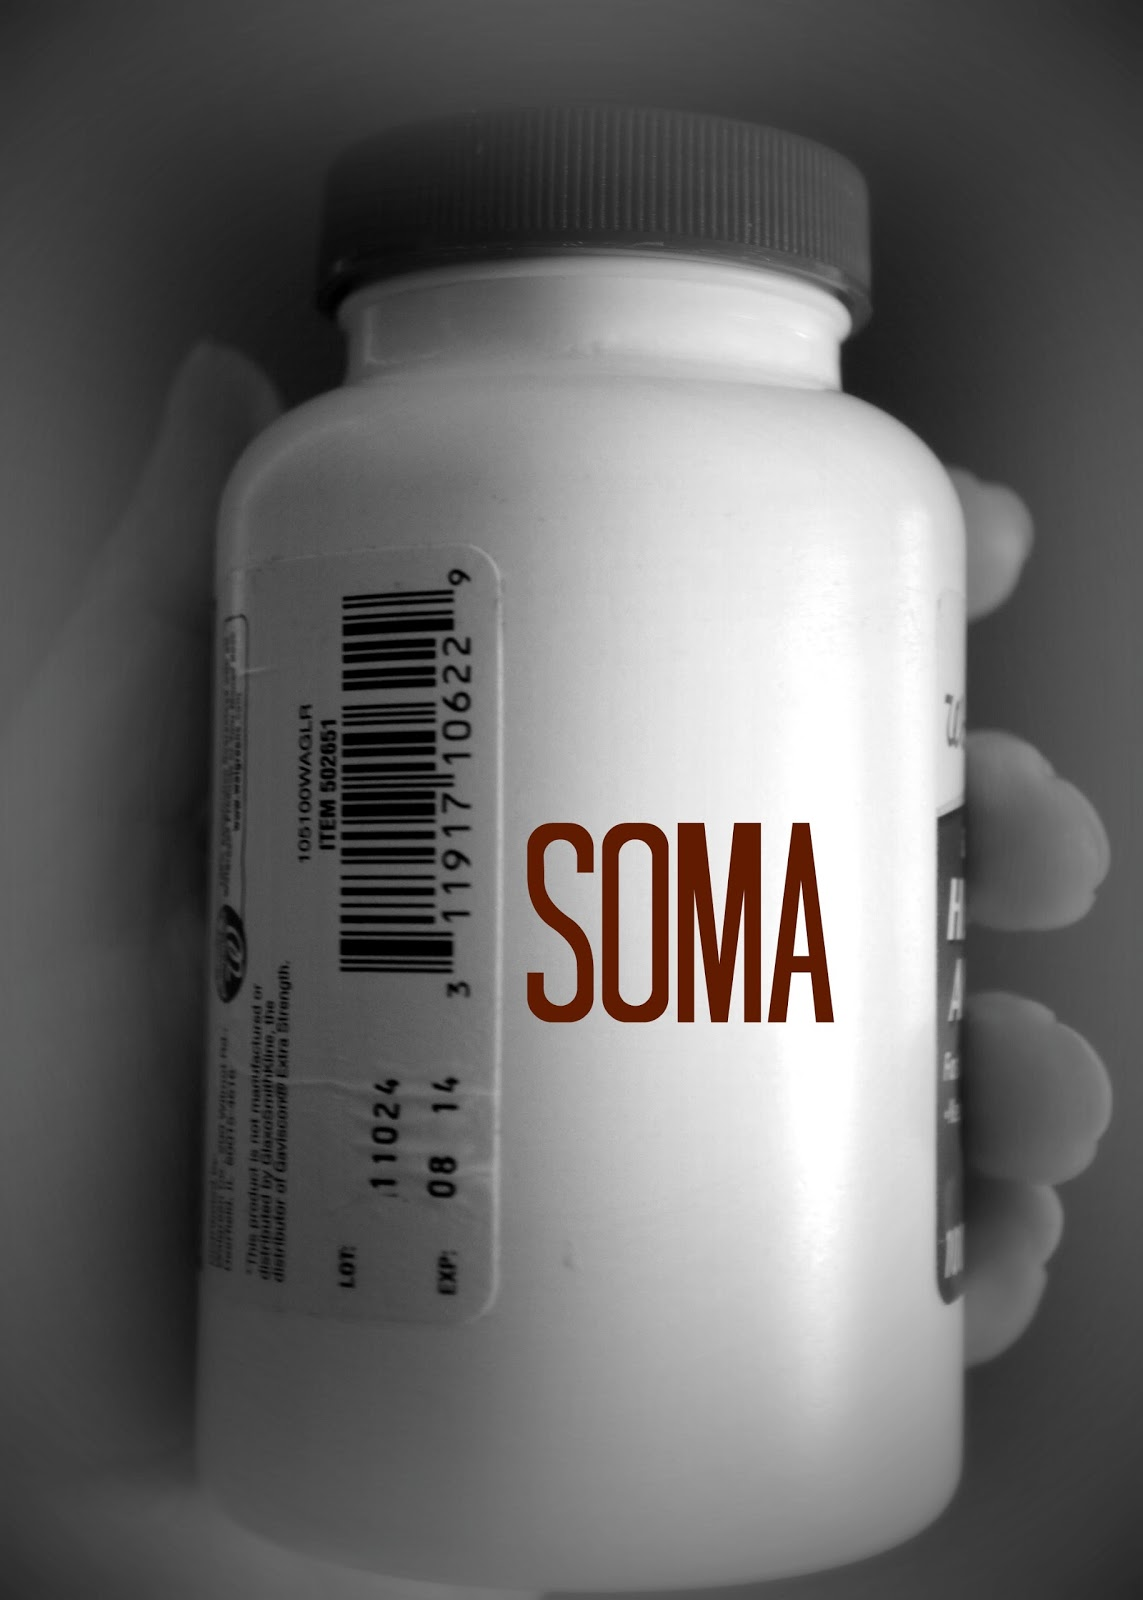 Brave New World Quotes About Soma Weak And Loved Soma A Prescription For No More Bad Days